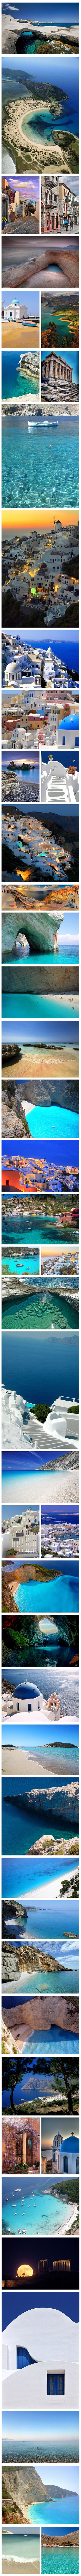 Part 1 of 2 - 100 Most Stunning Images of Greece